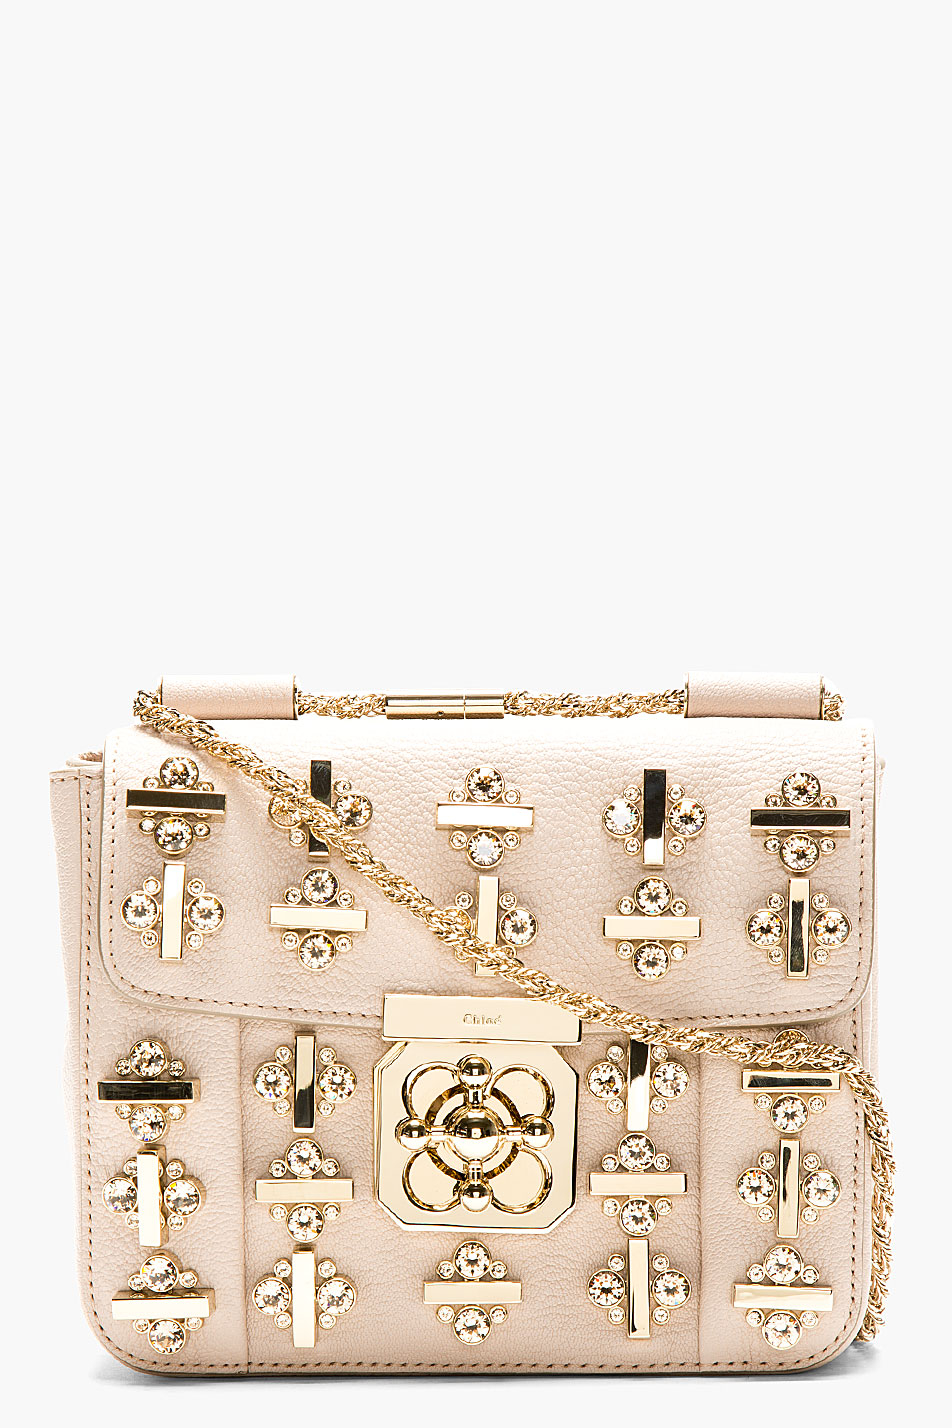 choloe bag - chloe embellished shoulder bag, choloe handbags